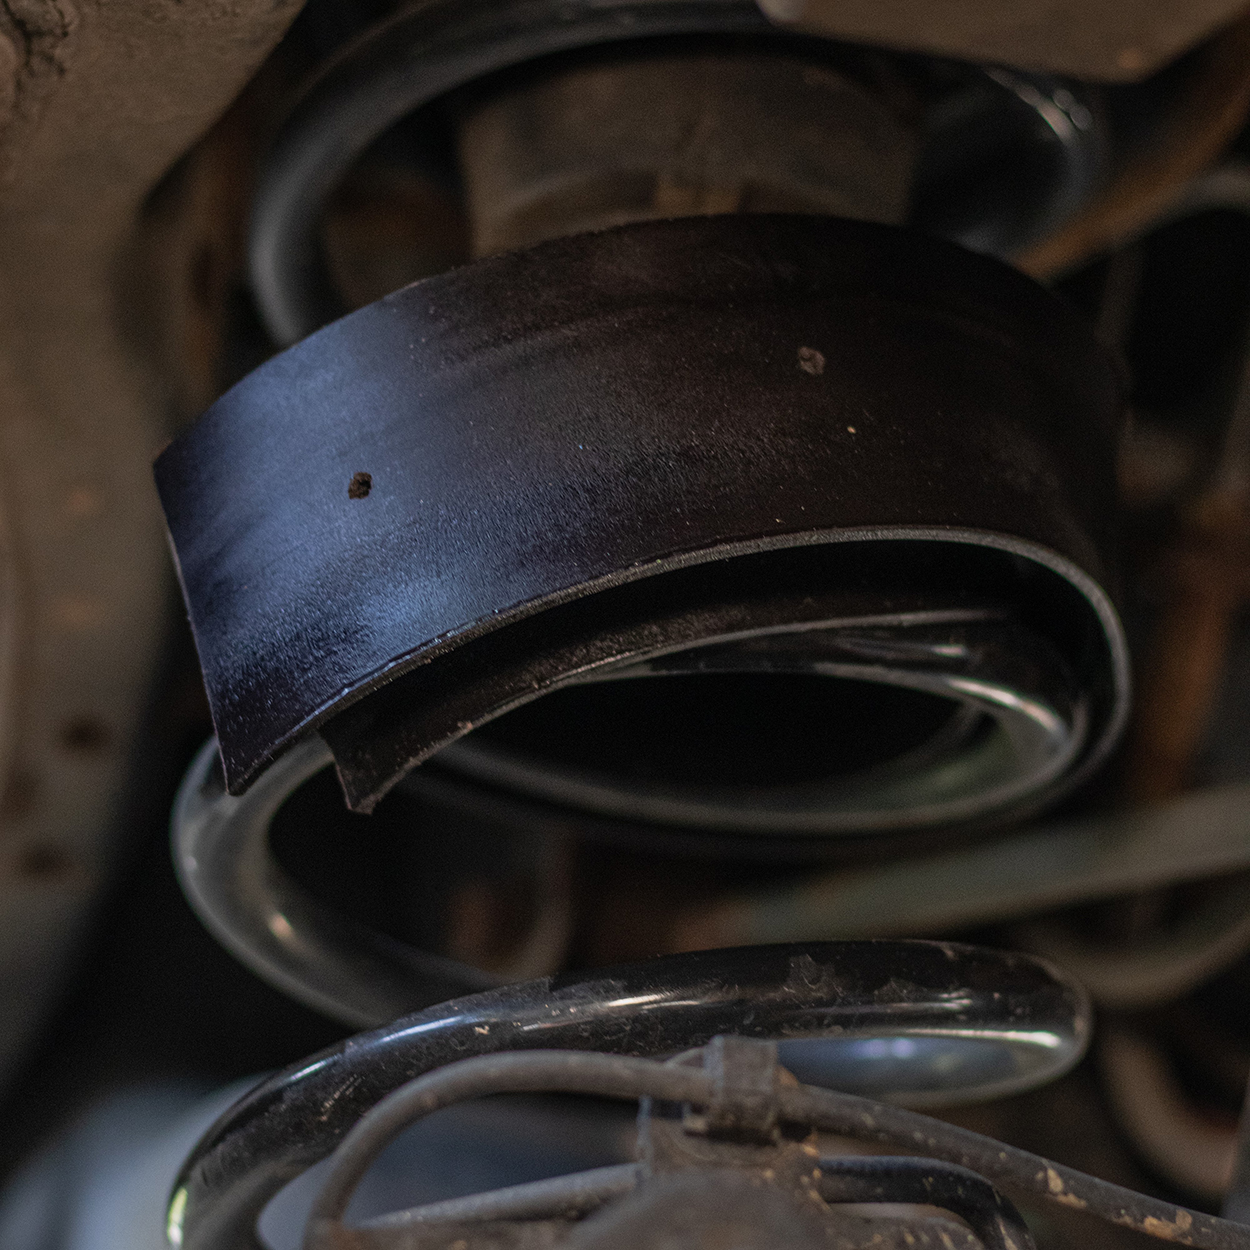 Coil Sumo Springs Review - Coil Spring Inserts on 5th Gen 4Runner